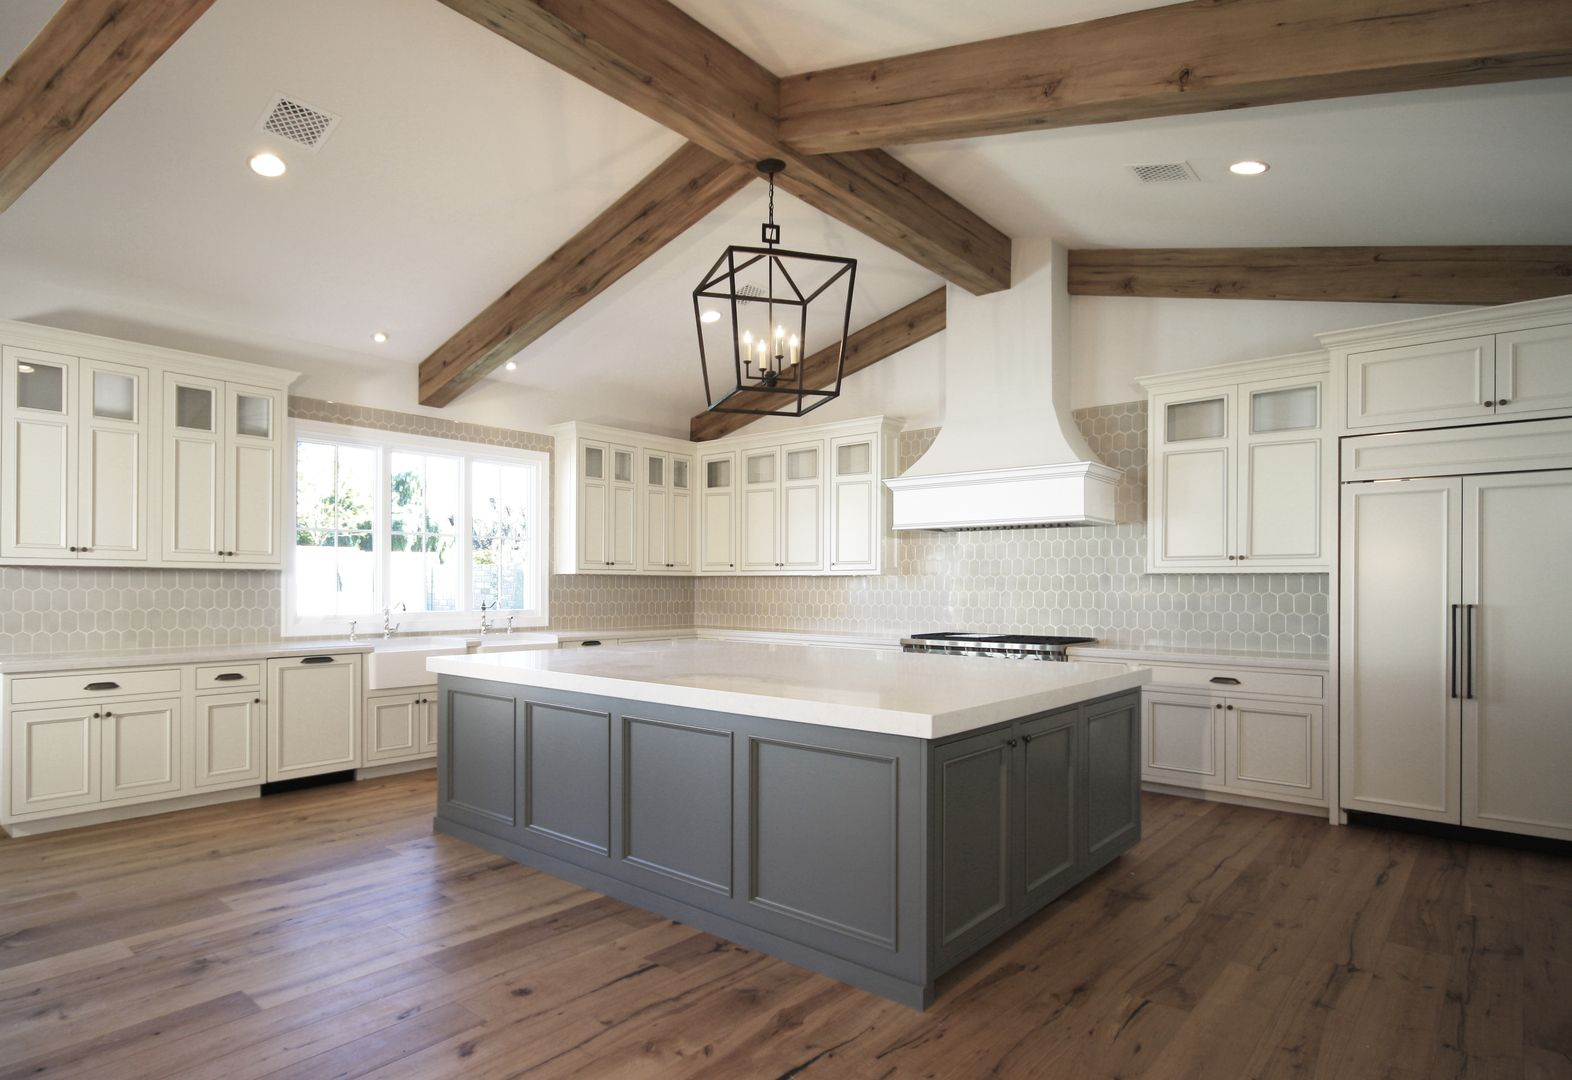 Best Large Kitchen Island With Vaulted Exposed Beams Ceiling 400 x 300